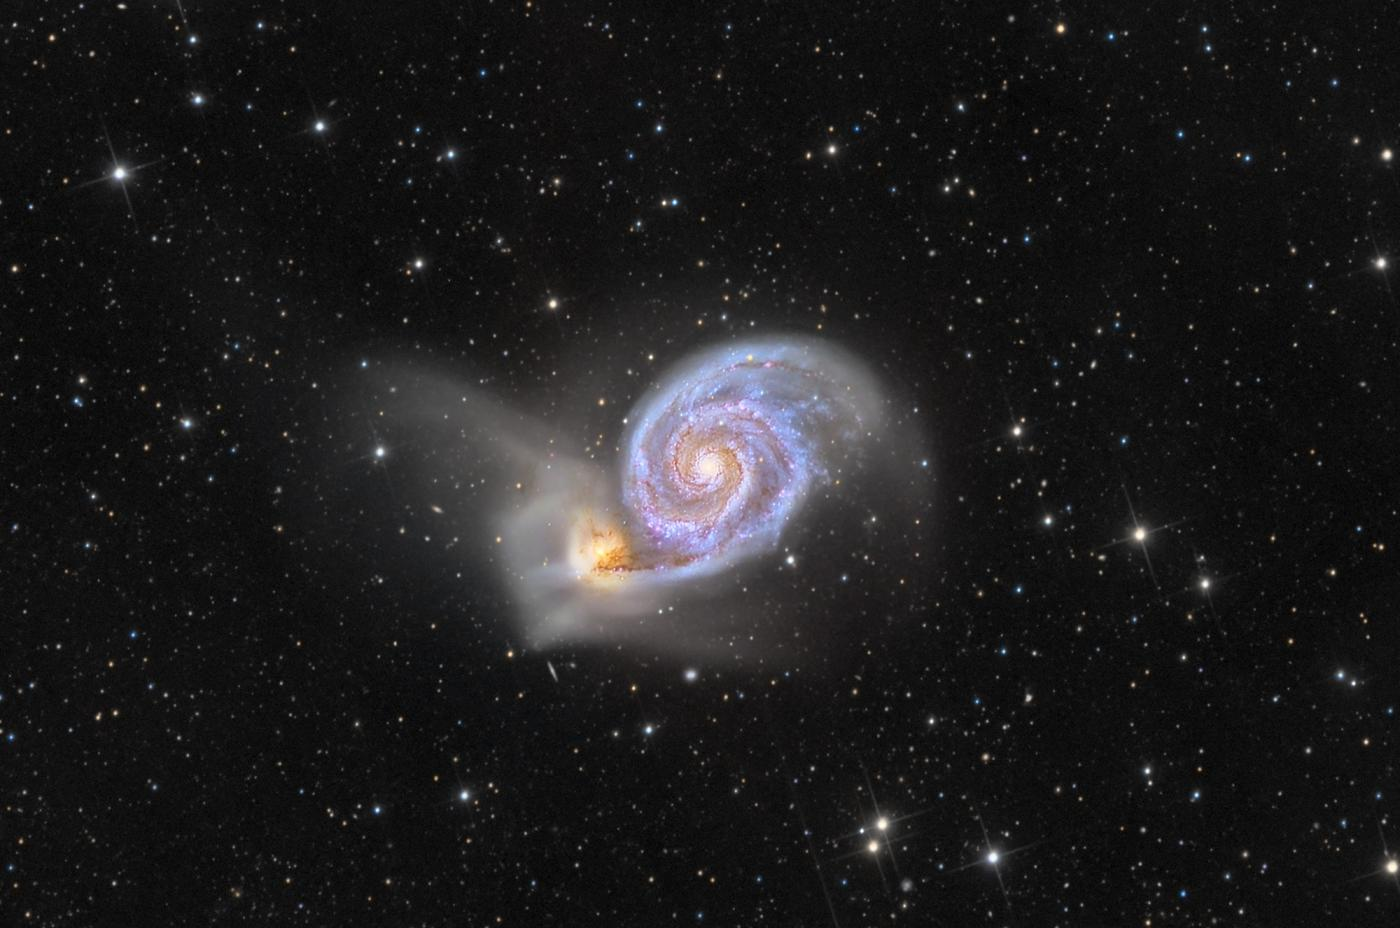 An image showing 'Dance of Galaxies'